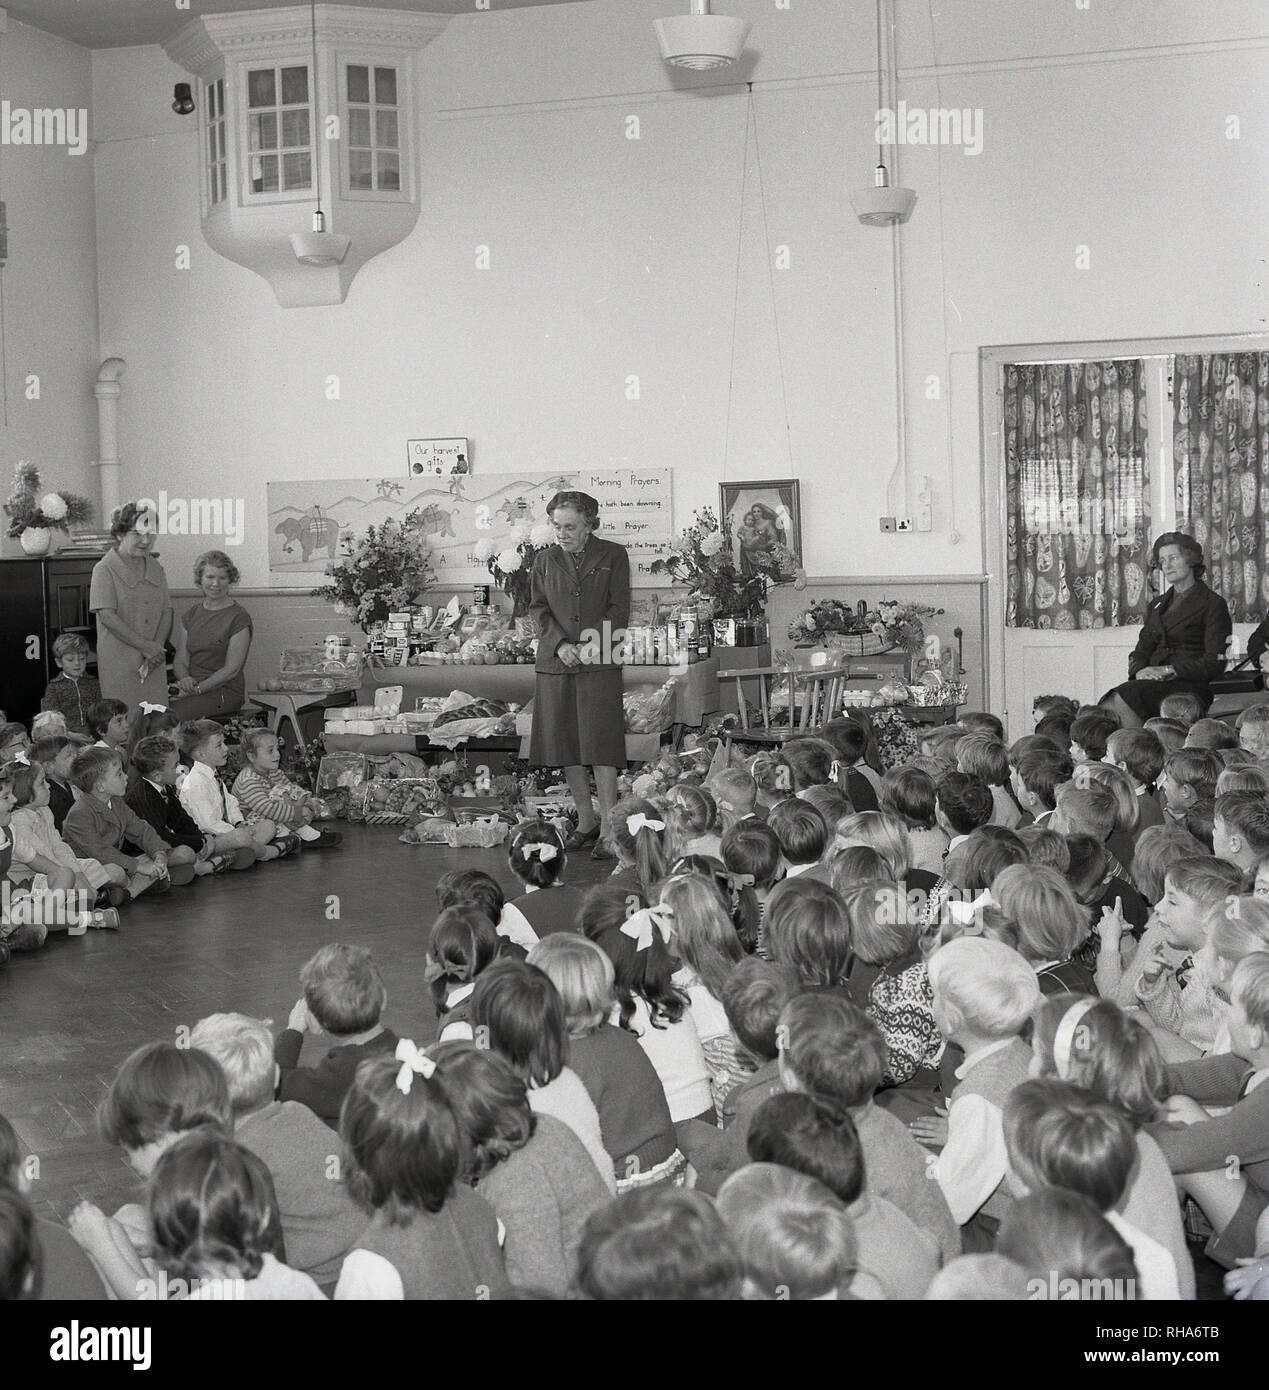 1964, primary school assembly, school children sitting together on the floor in a school hall to celebrate the harvest, when the farmers gather the crops from the fields, England, UK. The tradition dates back to pagan time, with the name deriving from the old English 'Haerfest', meaning 'Autumn'. - Stock Image